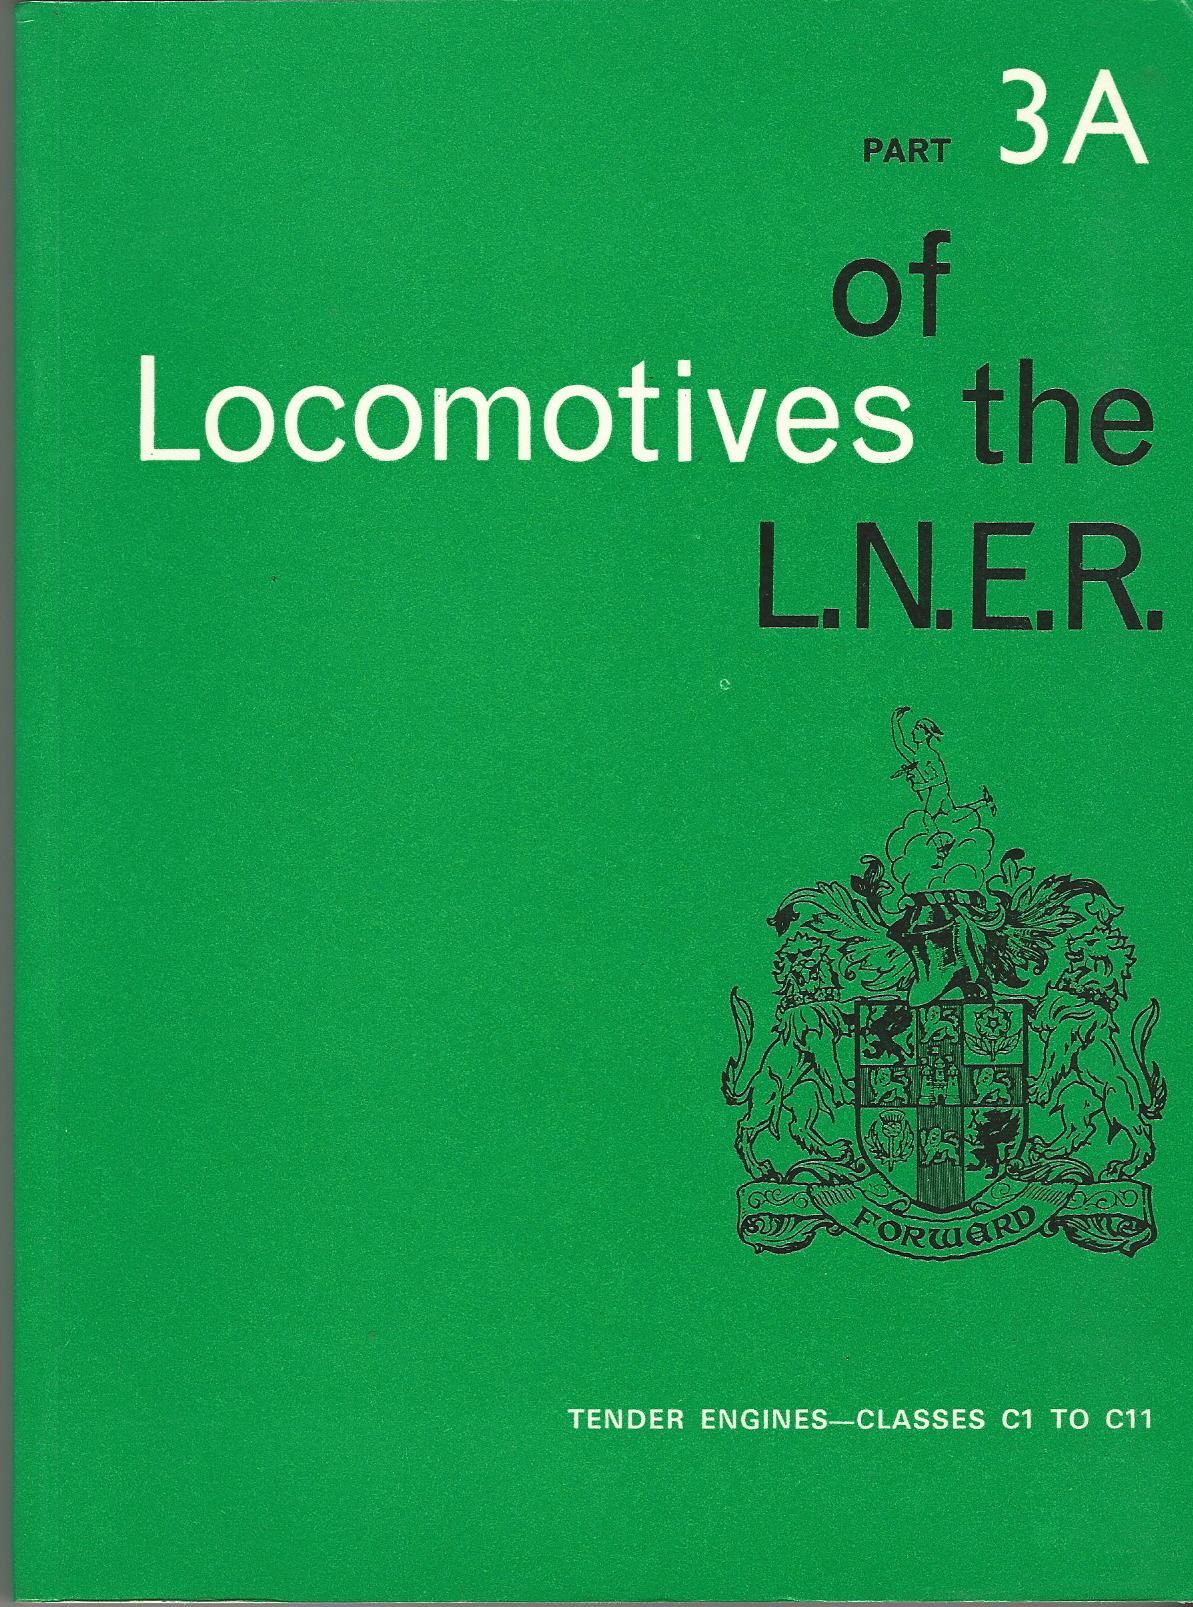 Image for Locomotives of the L.N.E.R. Part 3A: Tender Engines - Classes C1 to C11